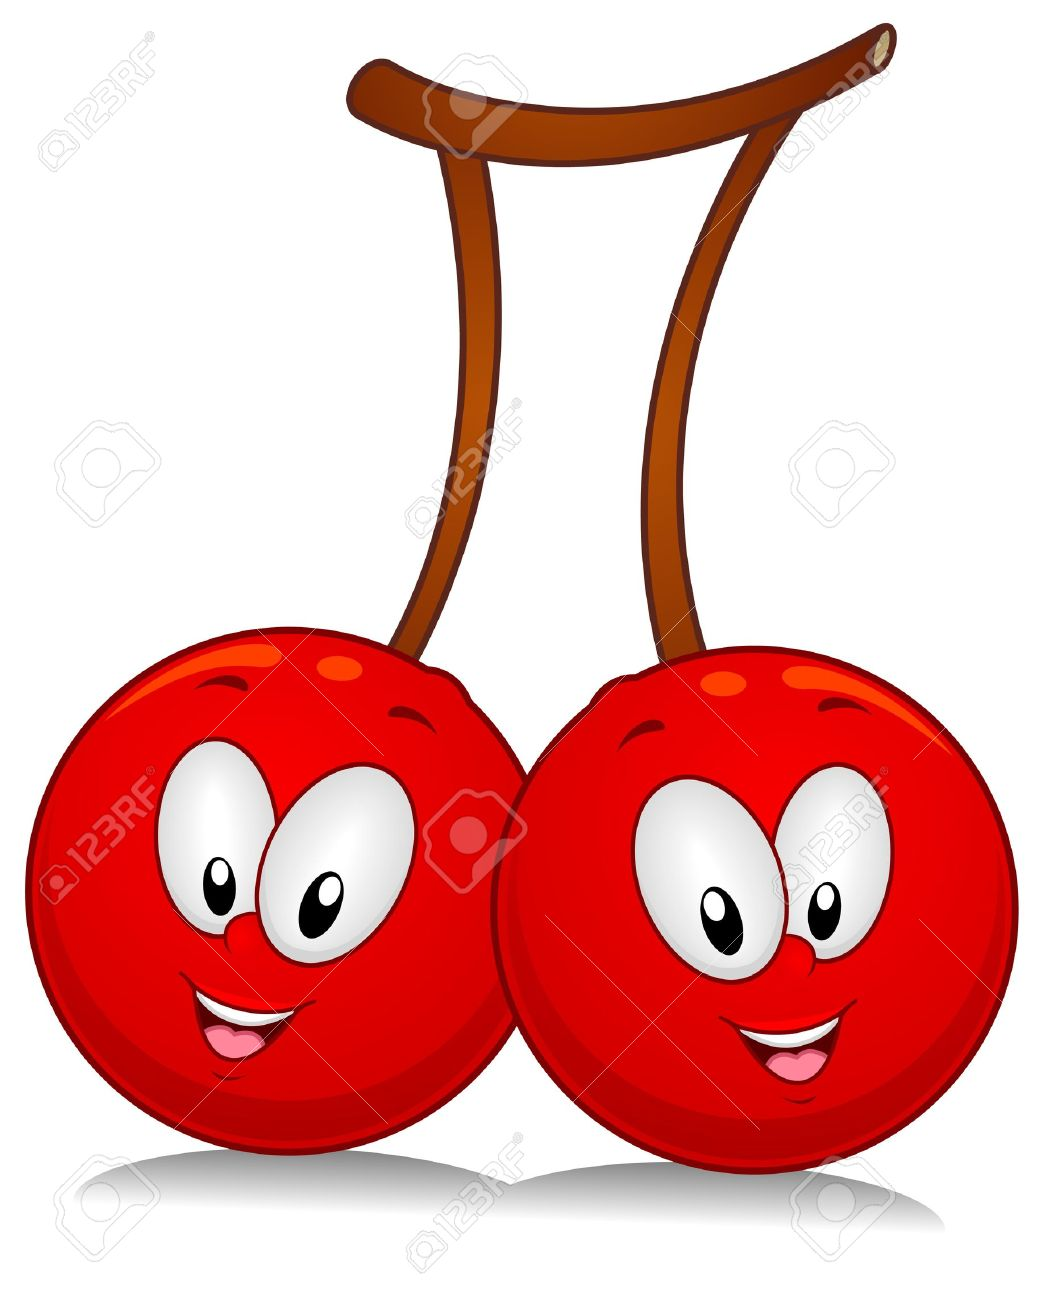 A Pair Of Cherry Characters Poised Sideside Stock Photo